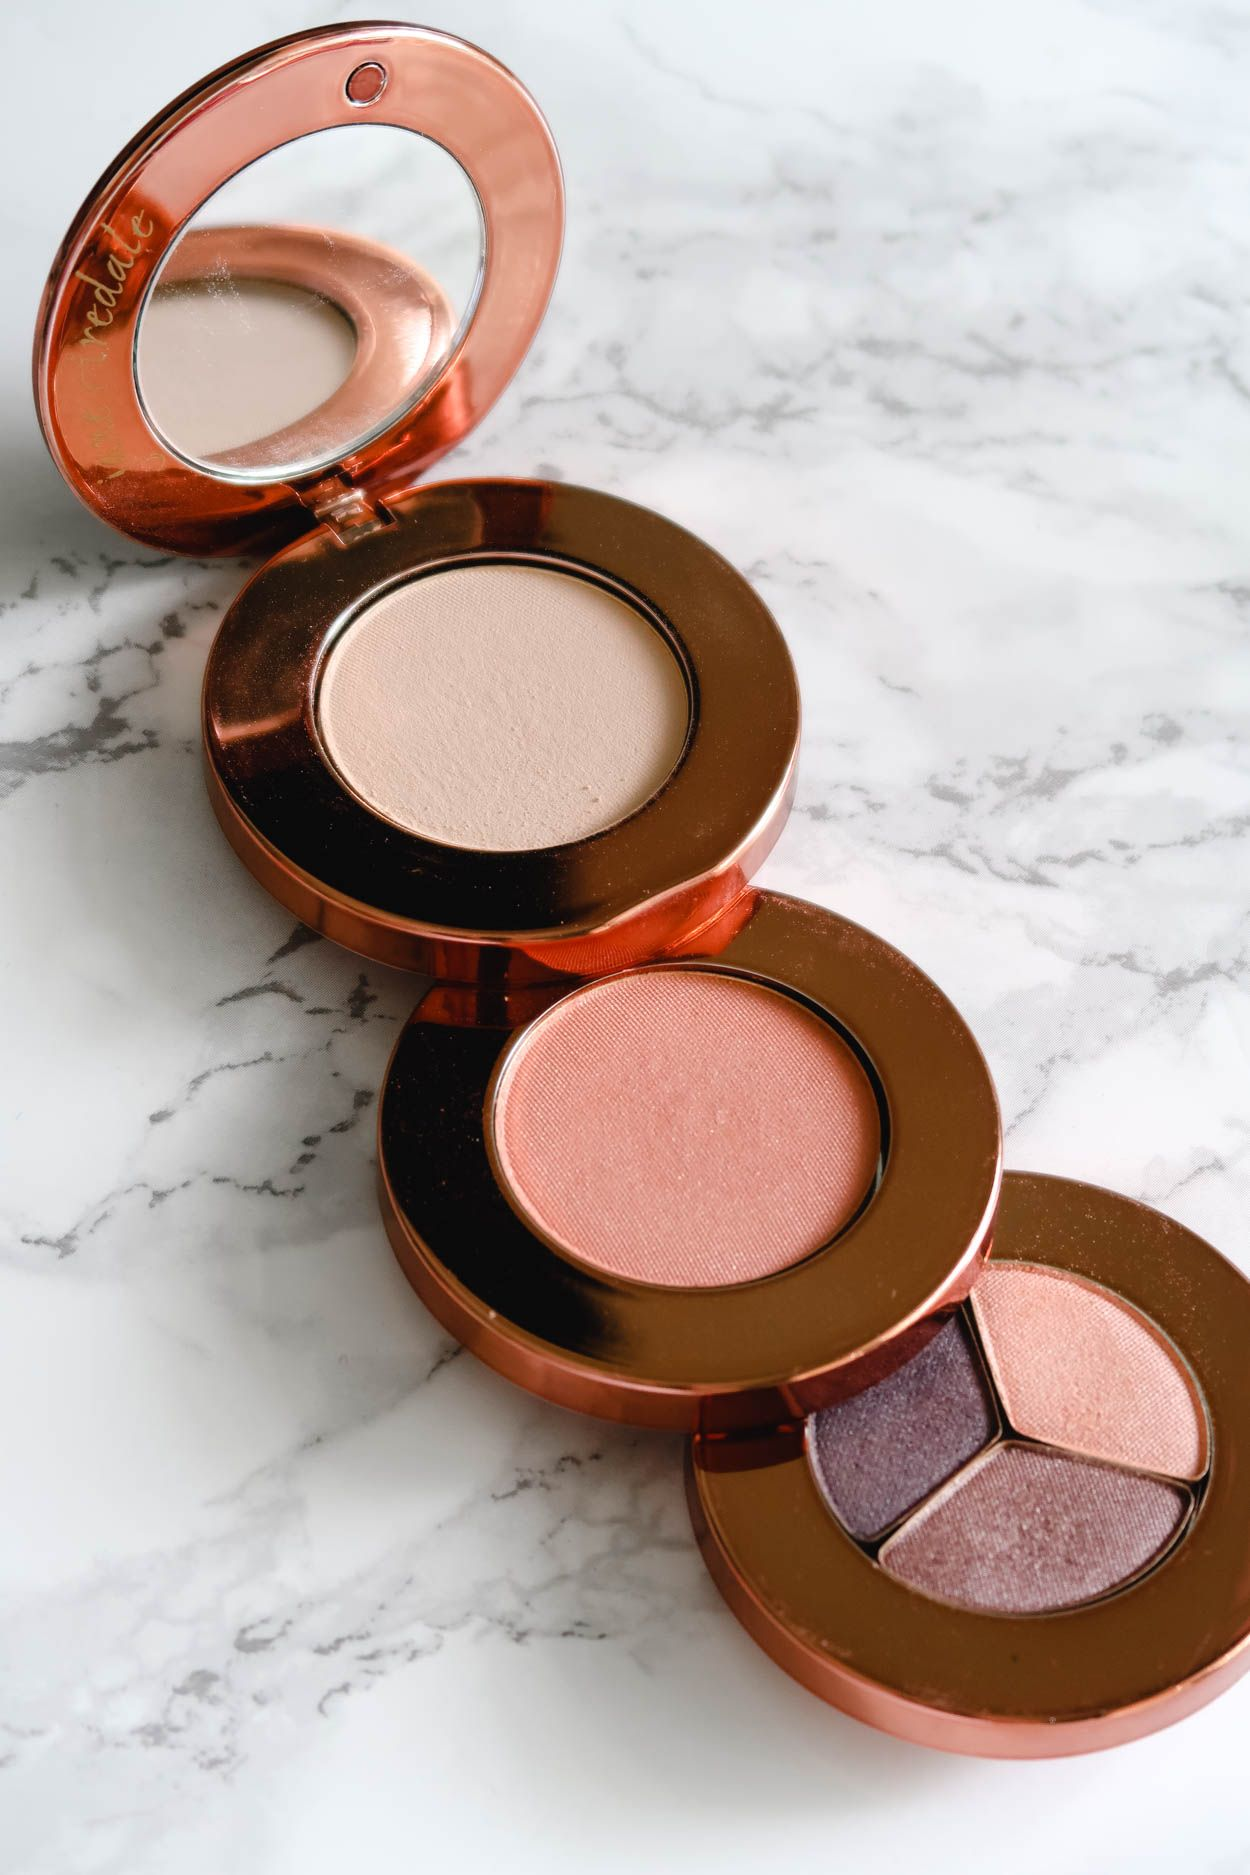 Jane Iredale The Skincare Makeup Jane iredale makeup